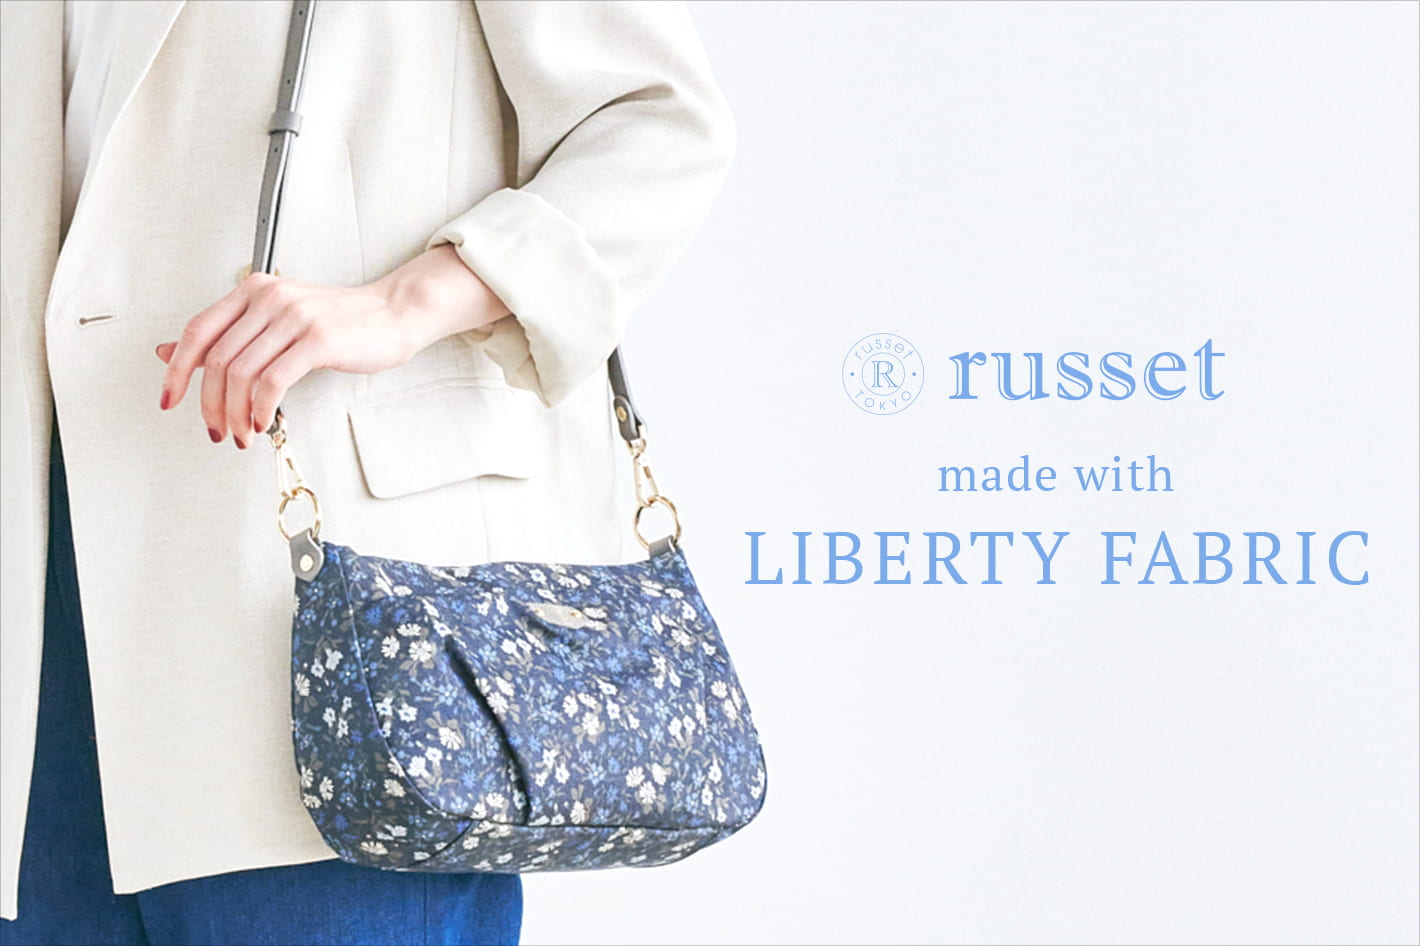 russet ◆New Arrival◆オンラインストア限定 russet made with LIBERTY FABRIC